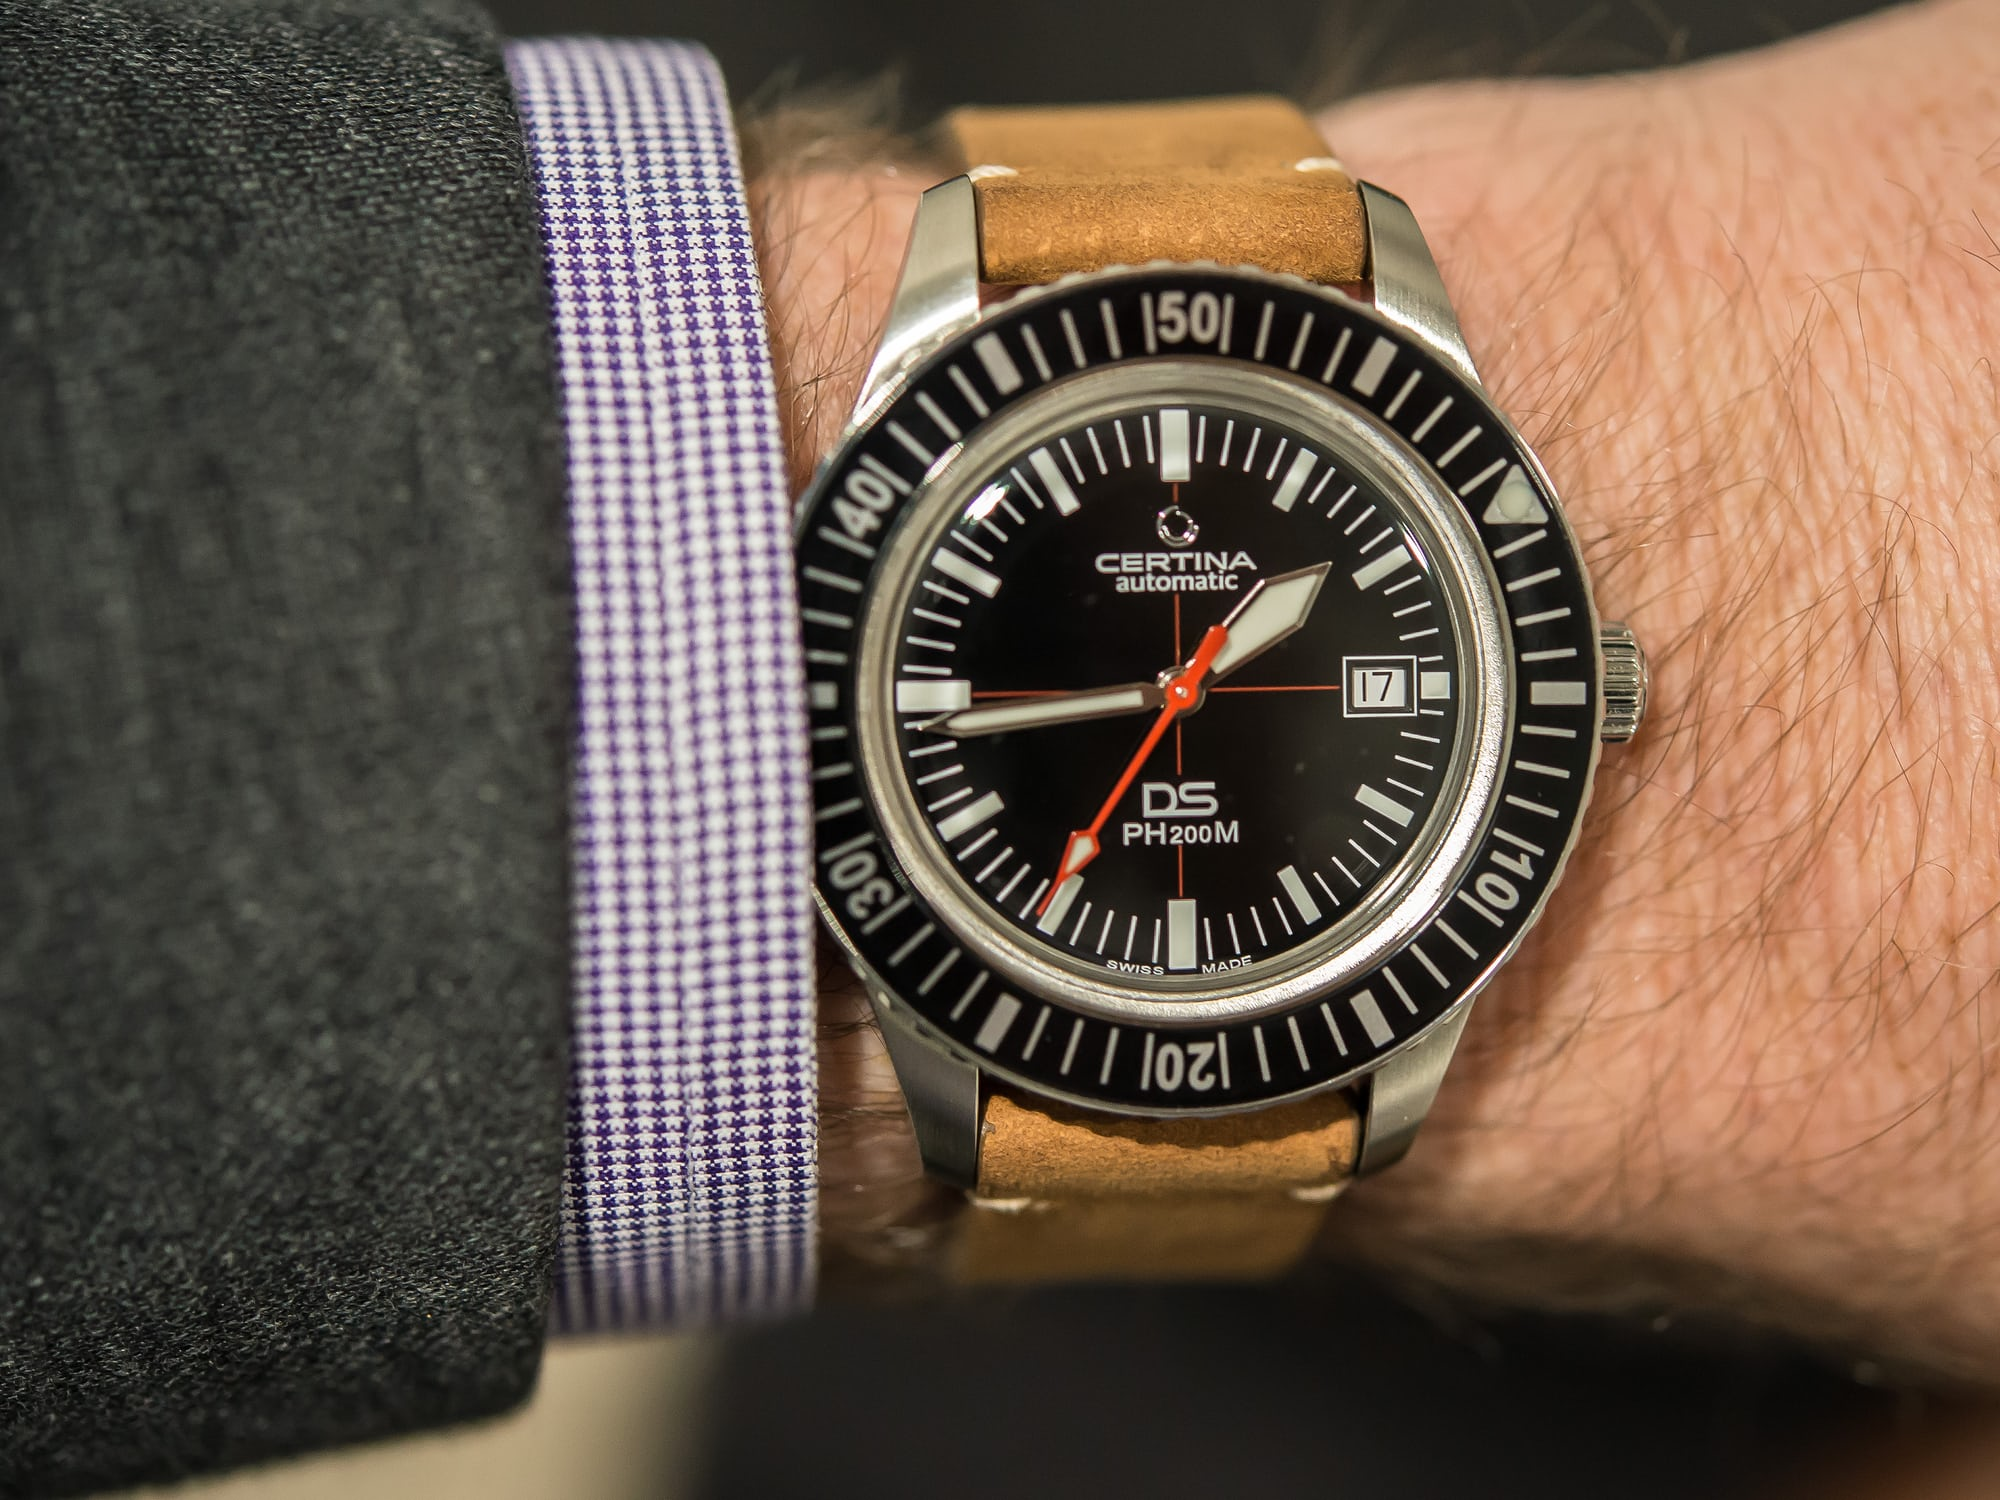 hands-on: the certina ds ph200m Hands-On: The Certina DS PH200M Certina 5